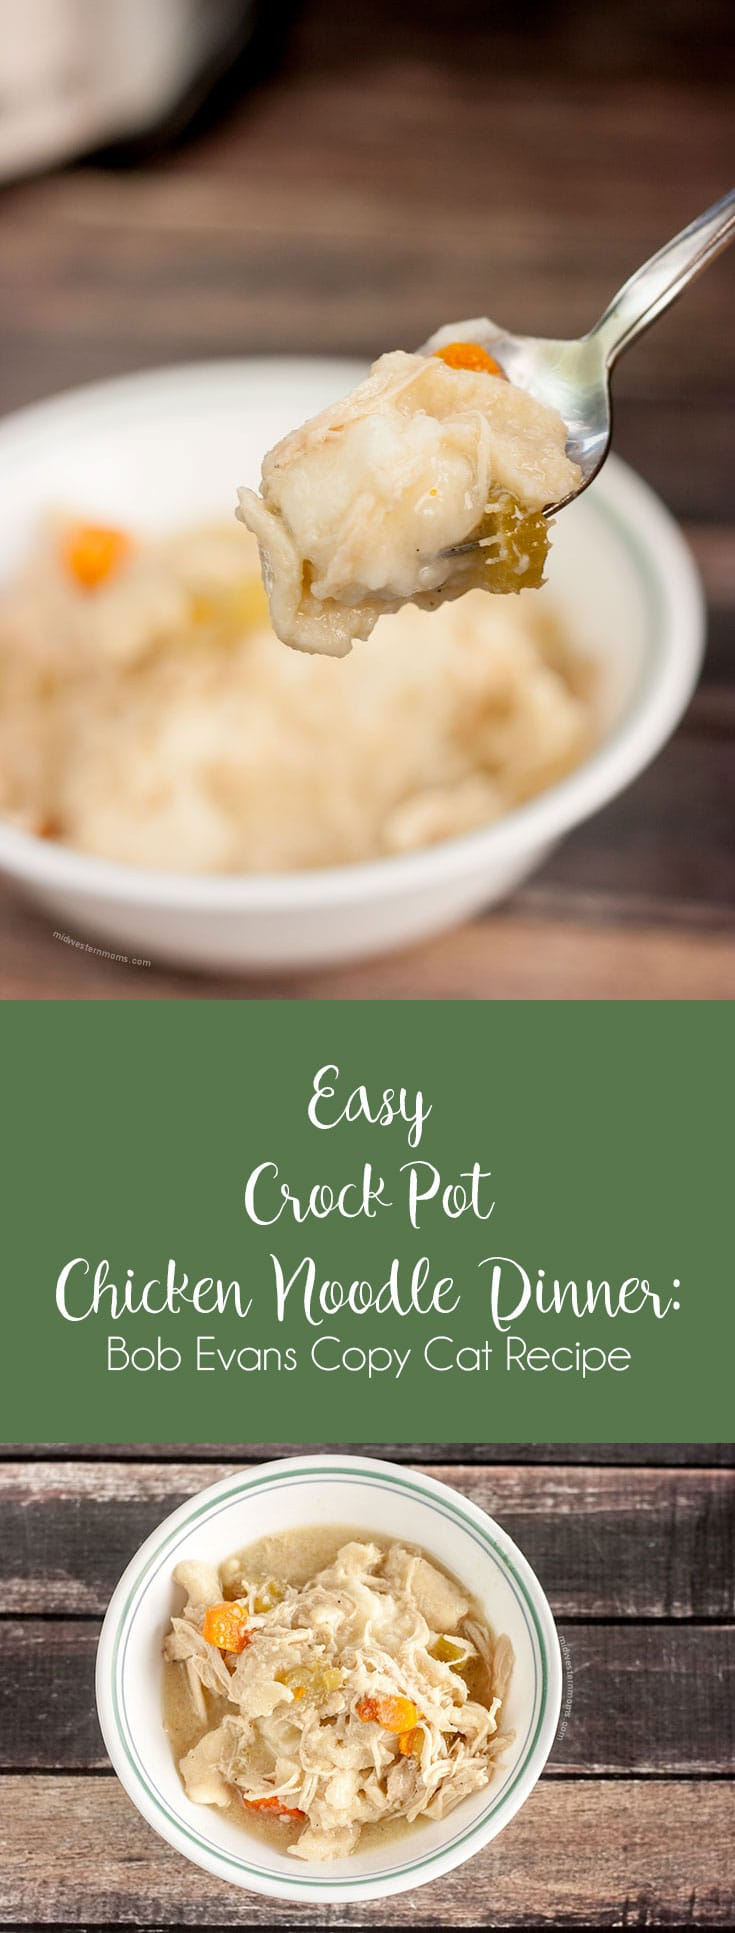 Easy crock pot chicken noodle dinner (Bob Evans Copy Cat recipe). The perfect comfort food.